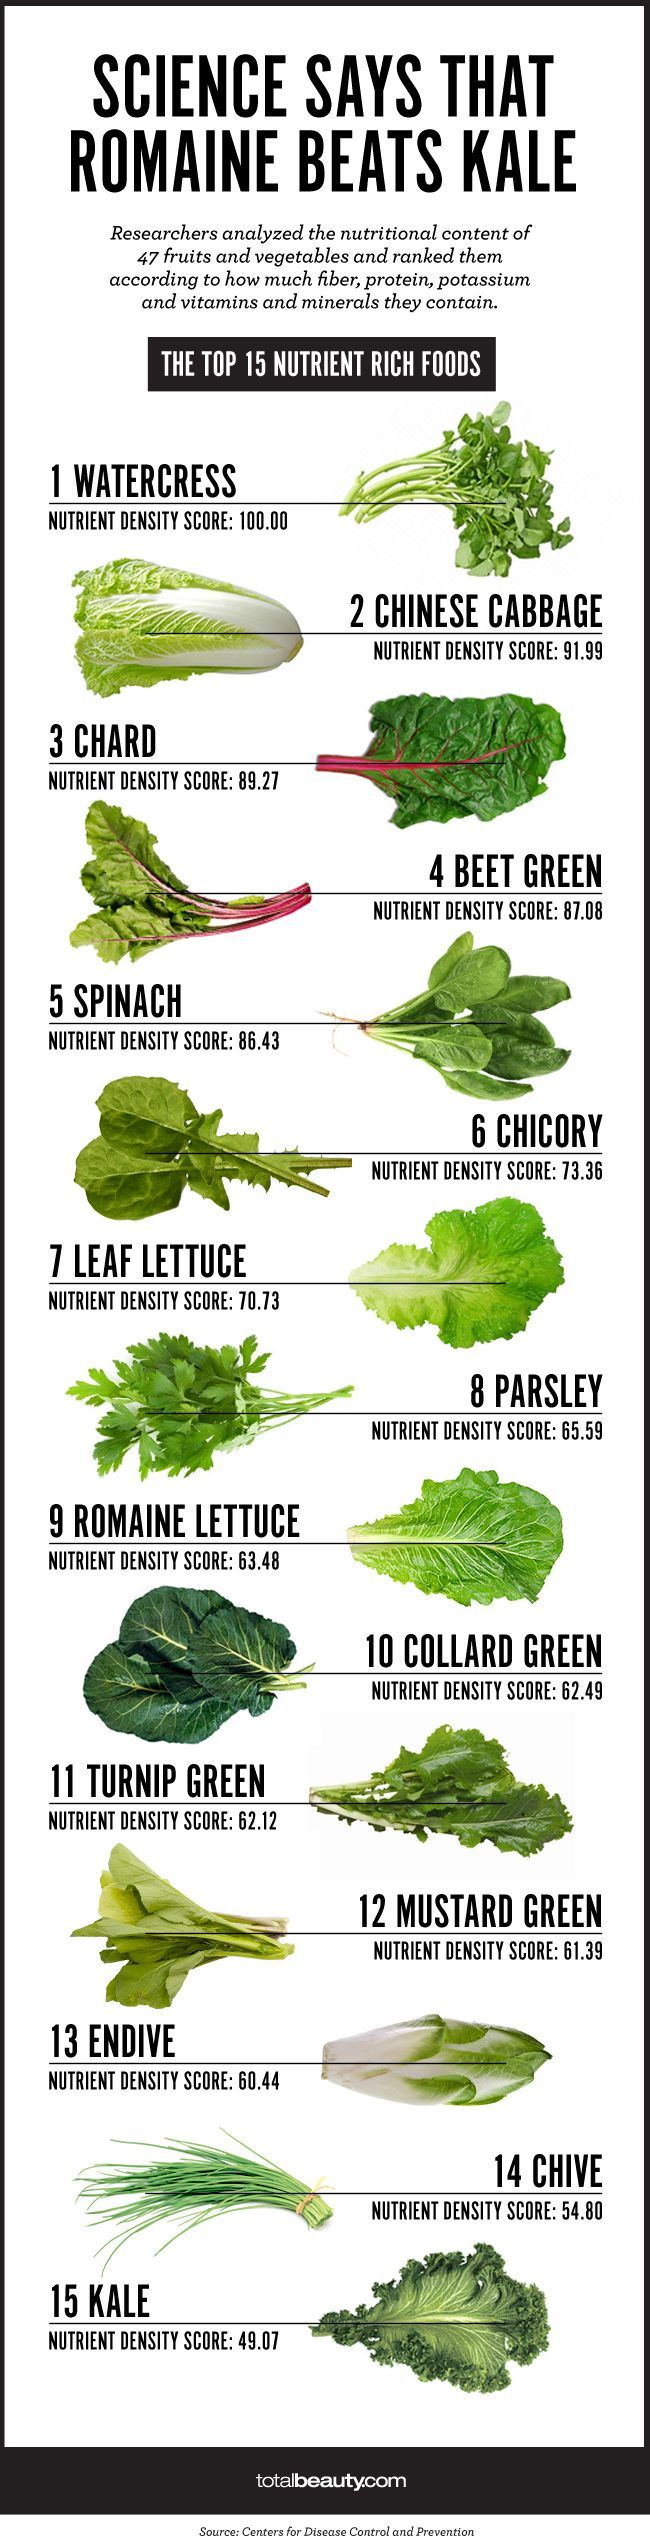 14 Greens More Nutritious Than Kale >> https://www.finedininglovers.com/blog/food-drinks/14-greens-more-nutritious-than-kale/